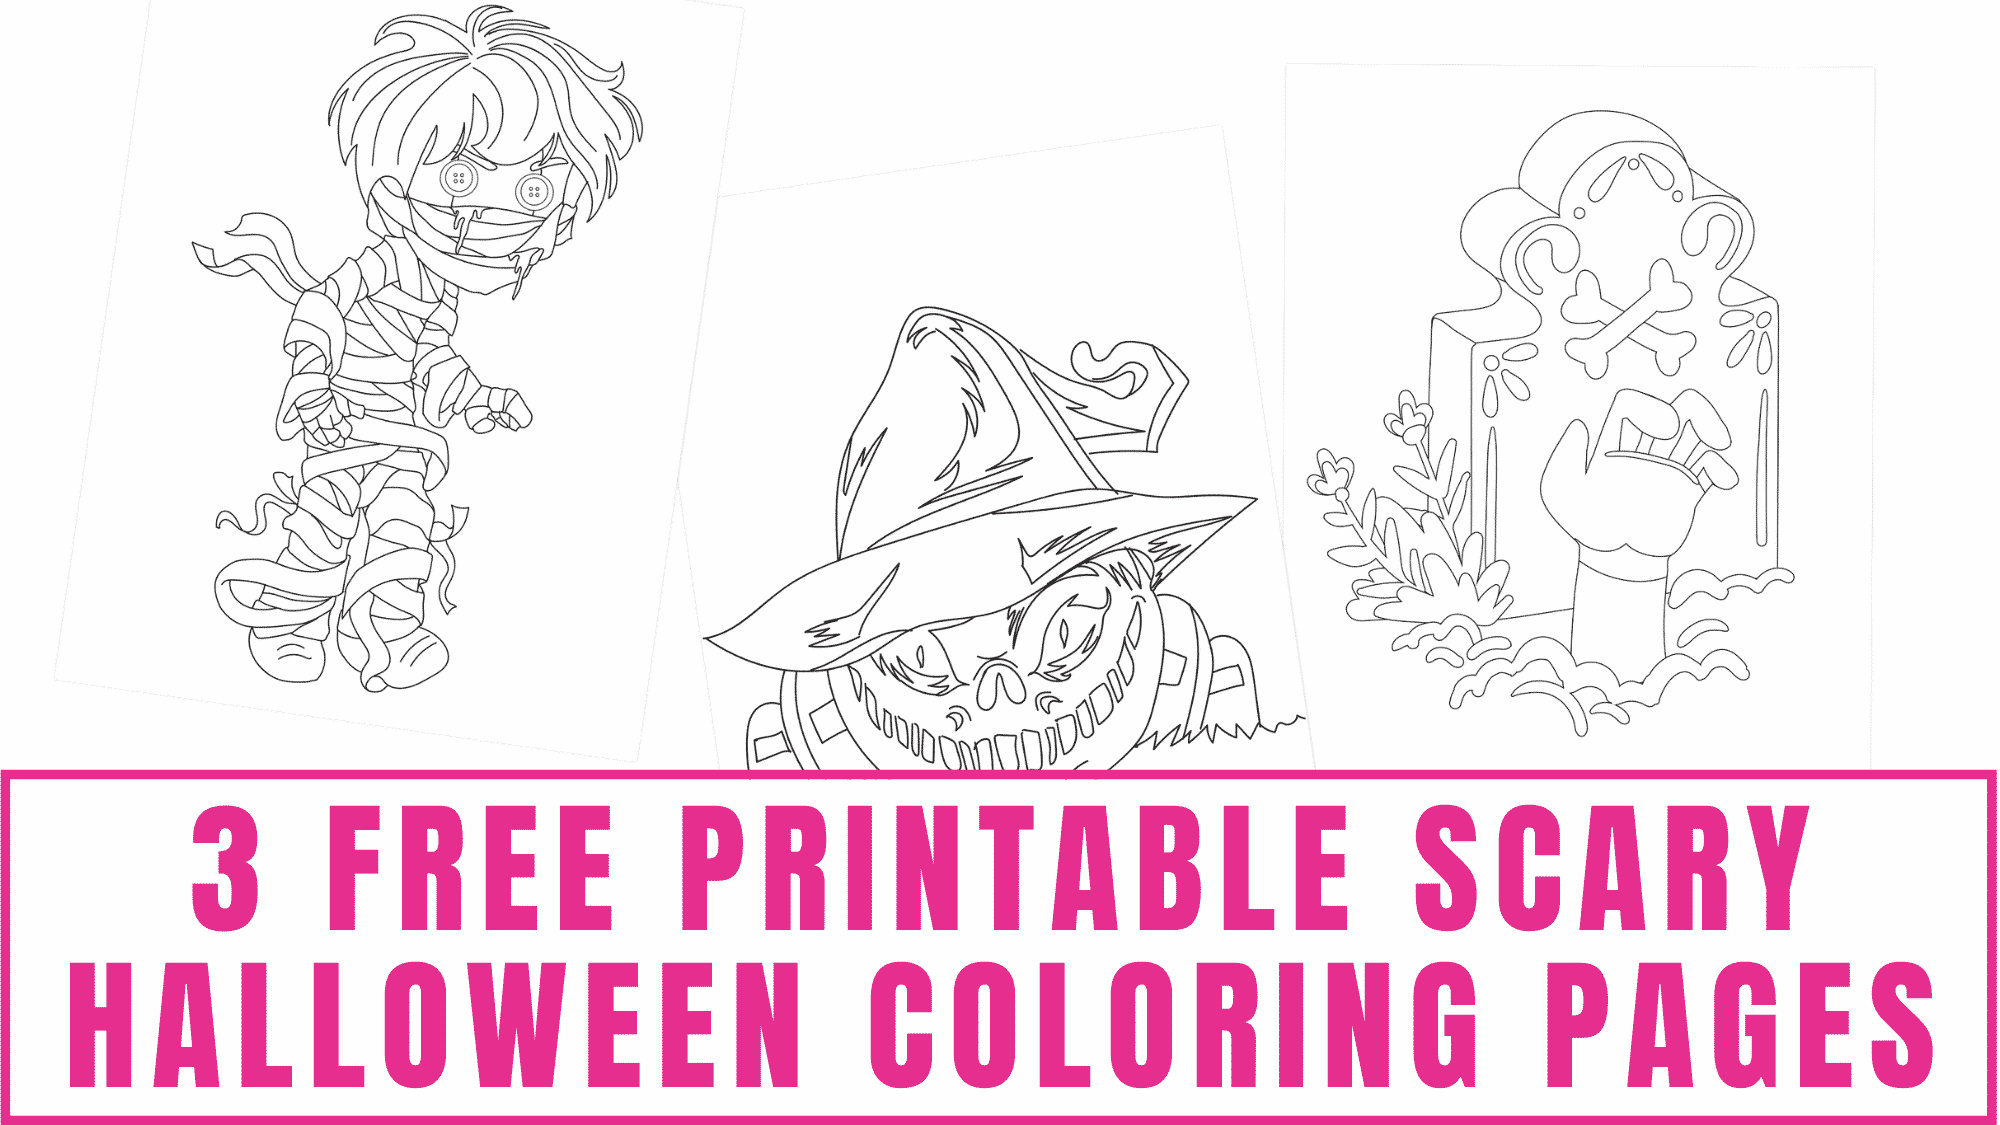 Looking for Halloween coloring pages for adults? These free printable scary Halloween coloring pages have just the right amount of frightening.